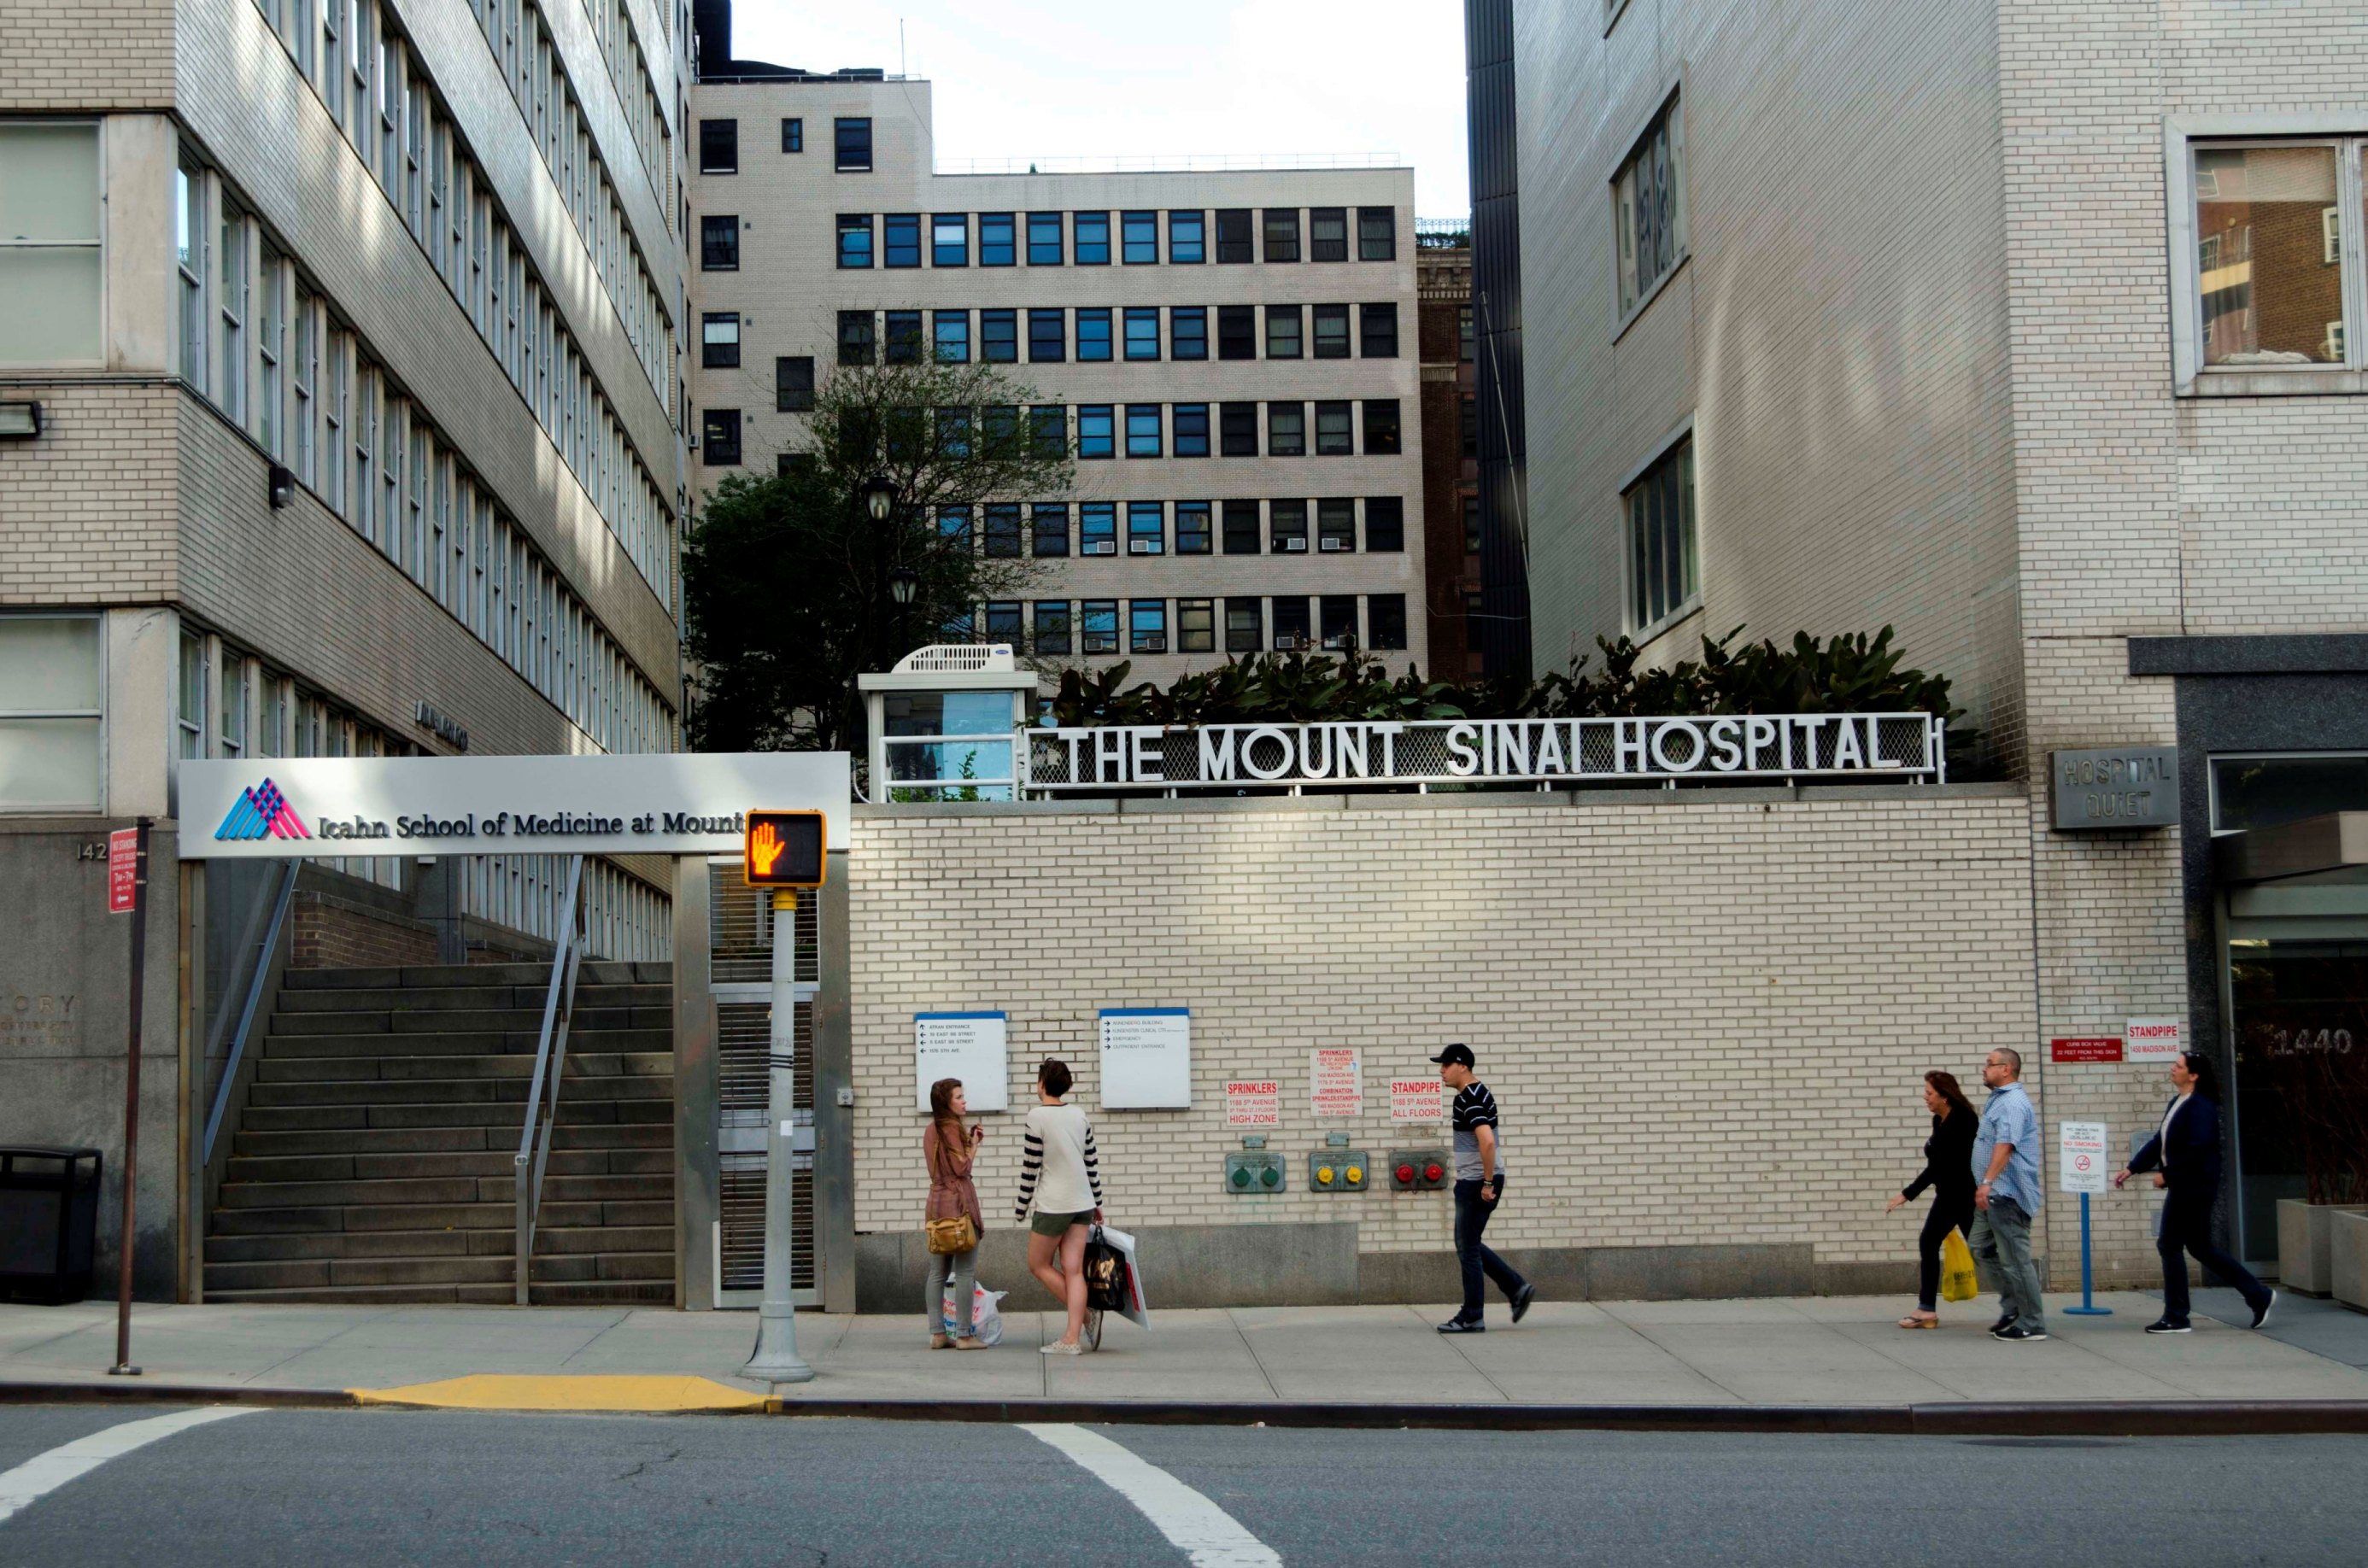 Mount Sinai Hospital, New York (5)